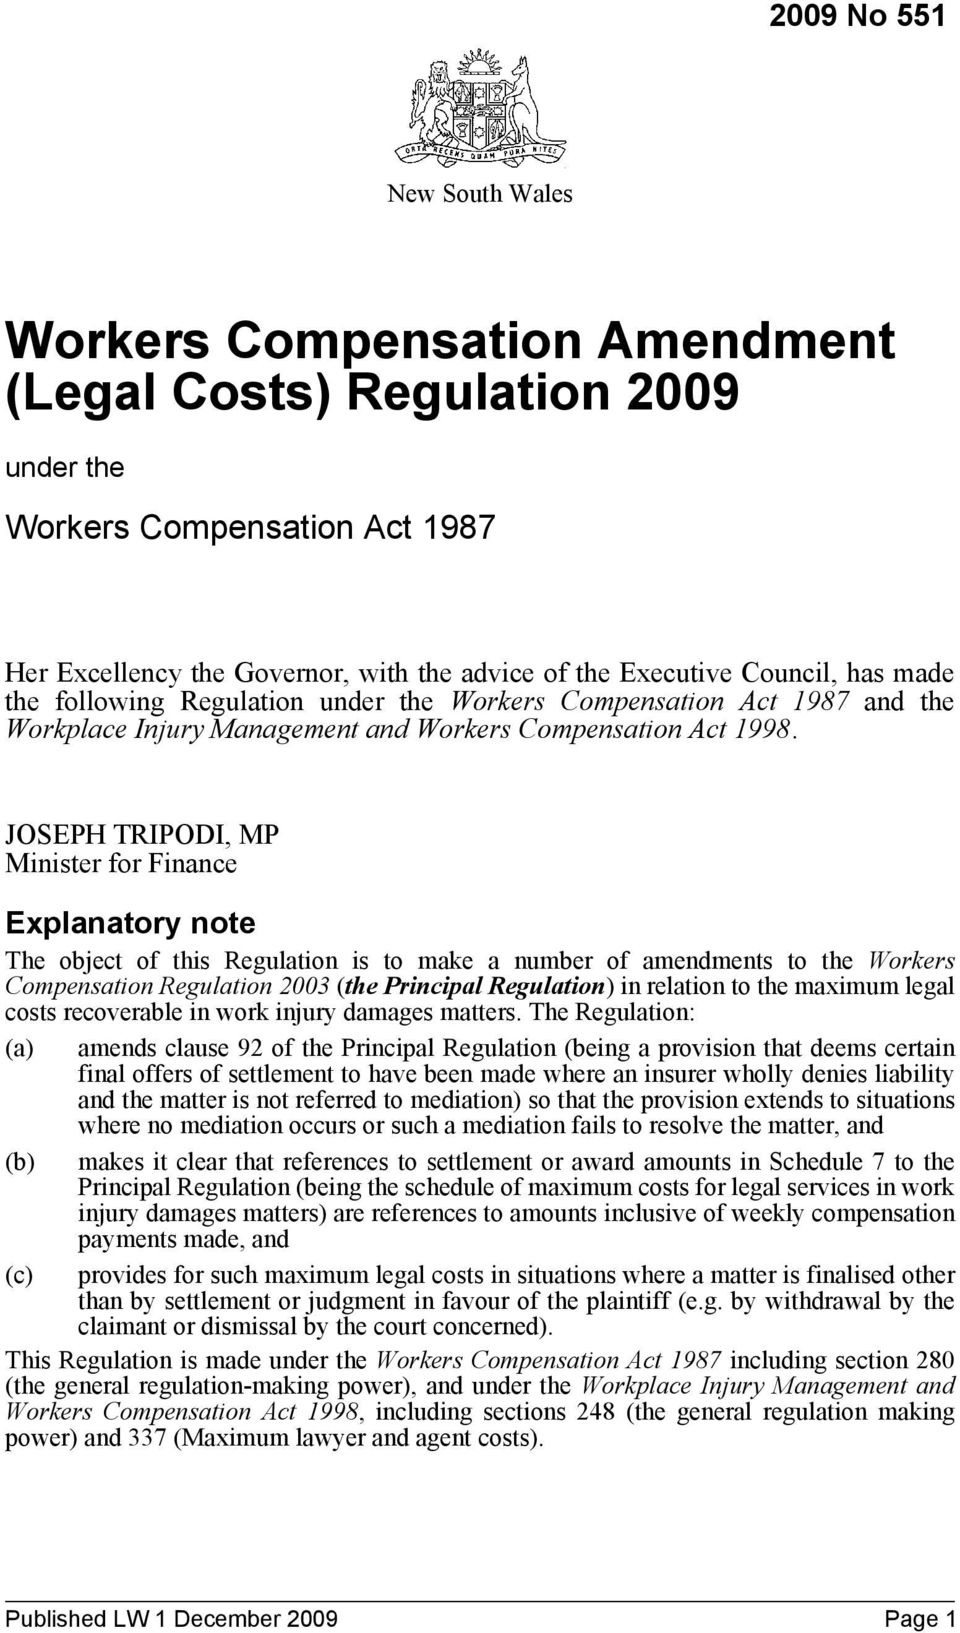 JOSEPH TRIPODI, MP Minister for Finance Explanatory note The object of this Regulation is to make a number of amendments to the Workers Compensation Regulation 2003 (the Principal Regulation) in